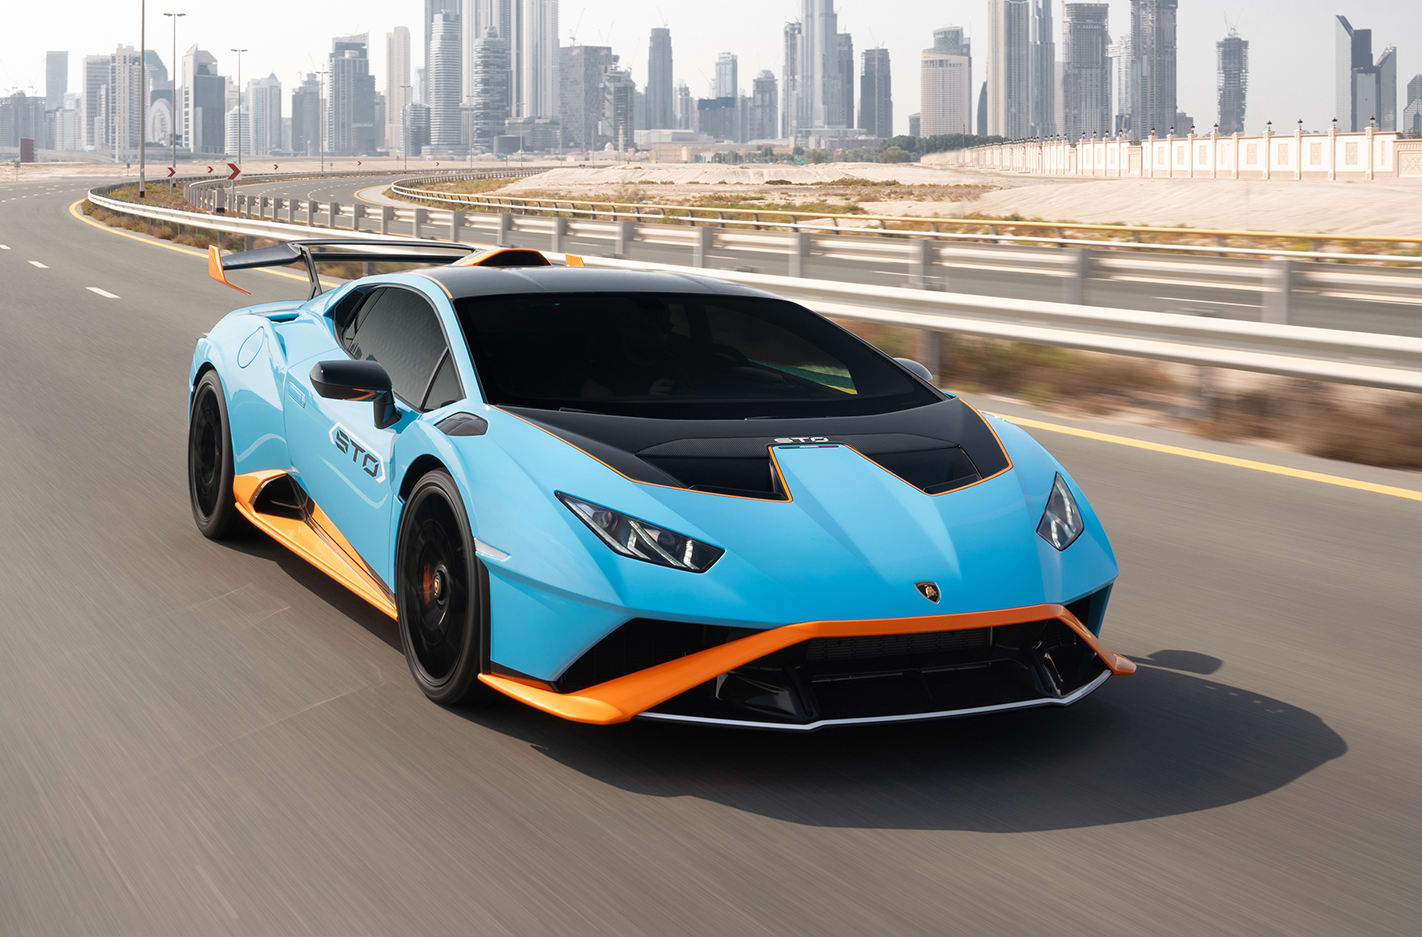 Five things you didn't know about the Lamborghini Huracan STO